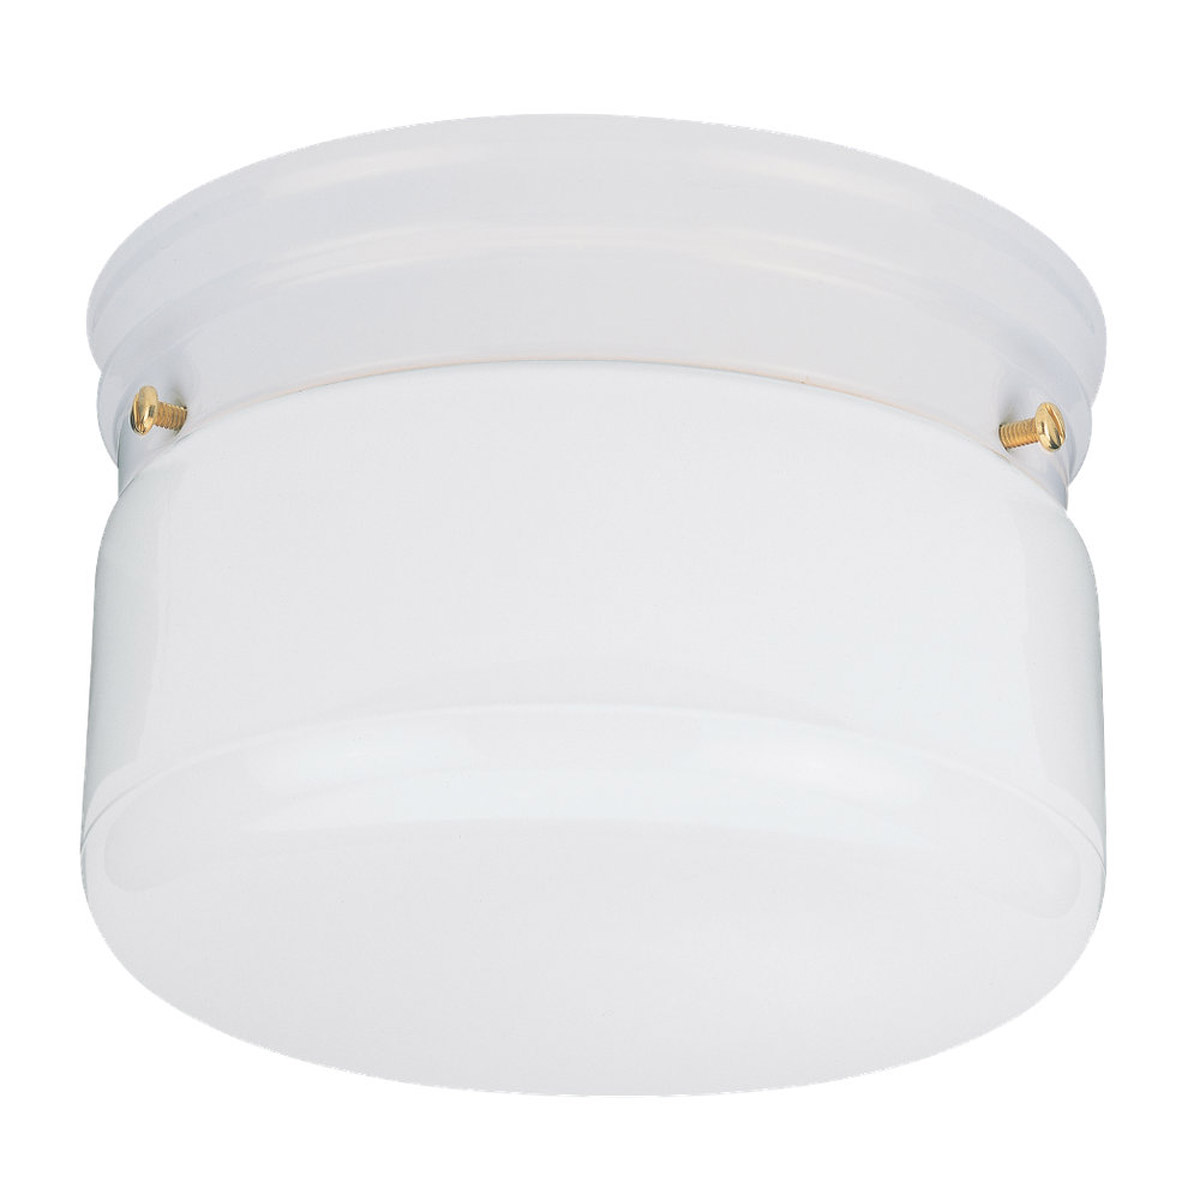 Sea Gull Lighting Economy Flush Mount 2 Light Flush Mount in White 5323-15